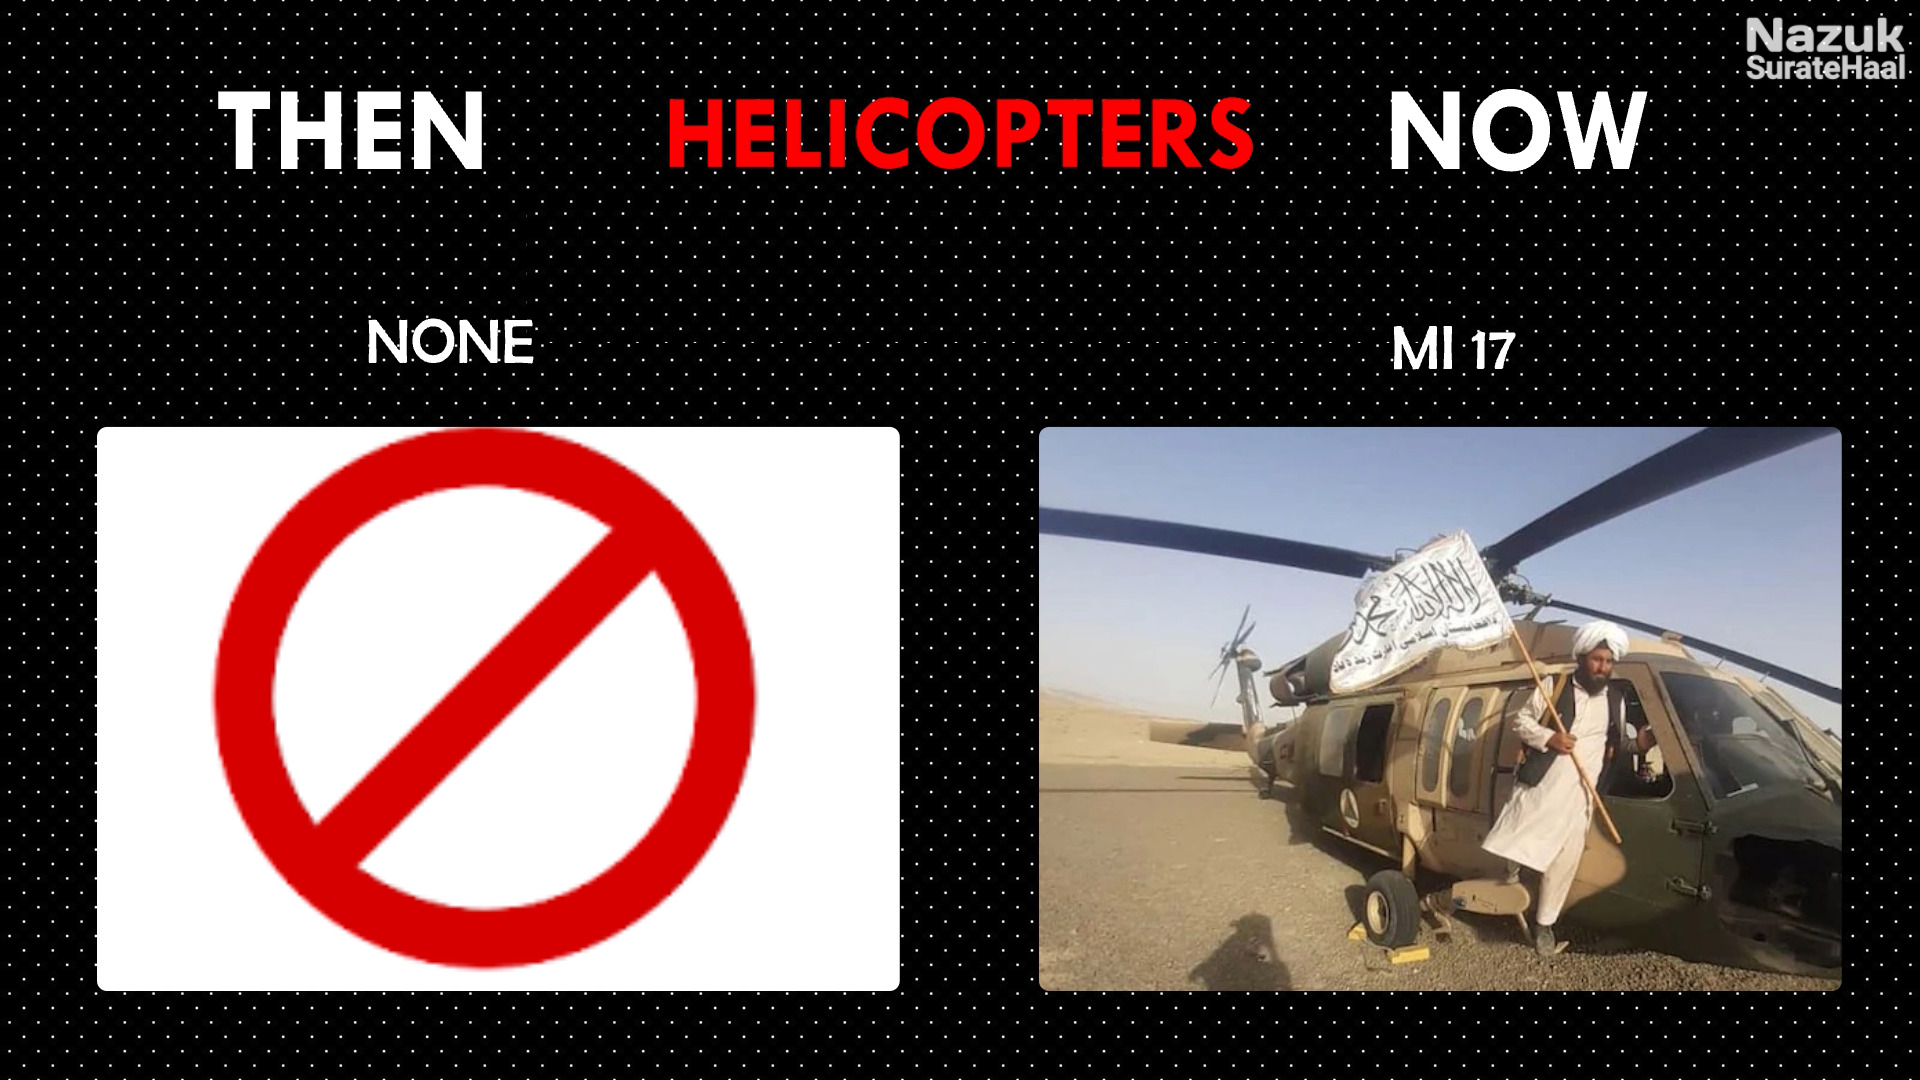 Helicopters used by the Taliban